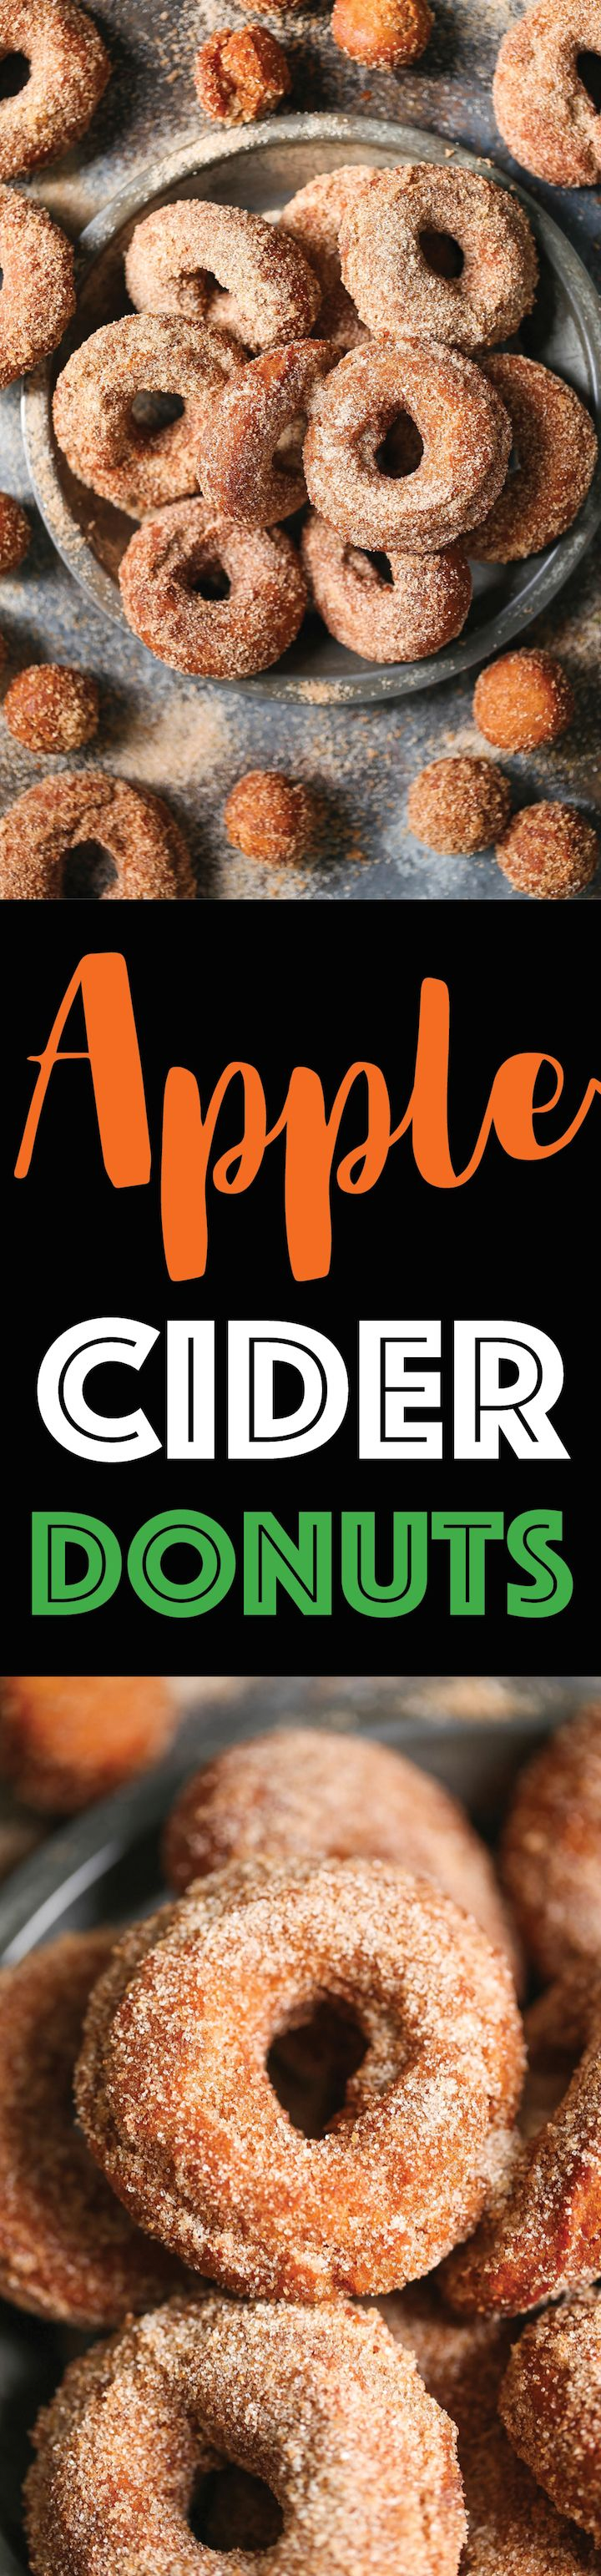 Apple Cider Donuts - There's truly nothing better than biting into a warm, fresh donut coated in cinnamon sugar. It melts in your mouth with every bite!